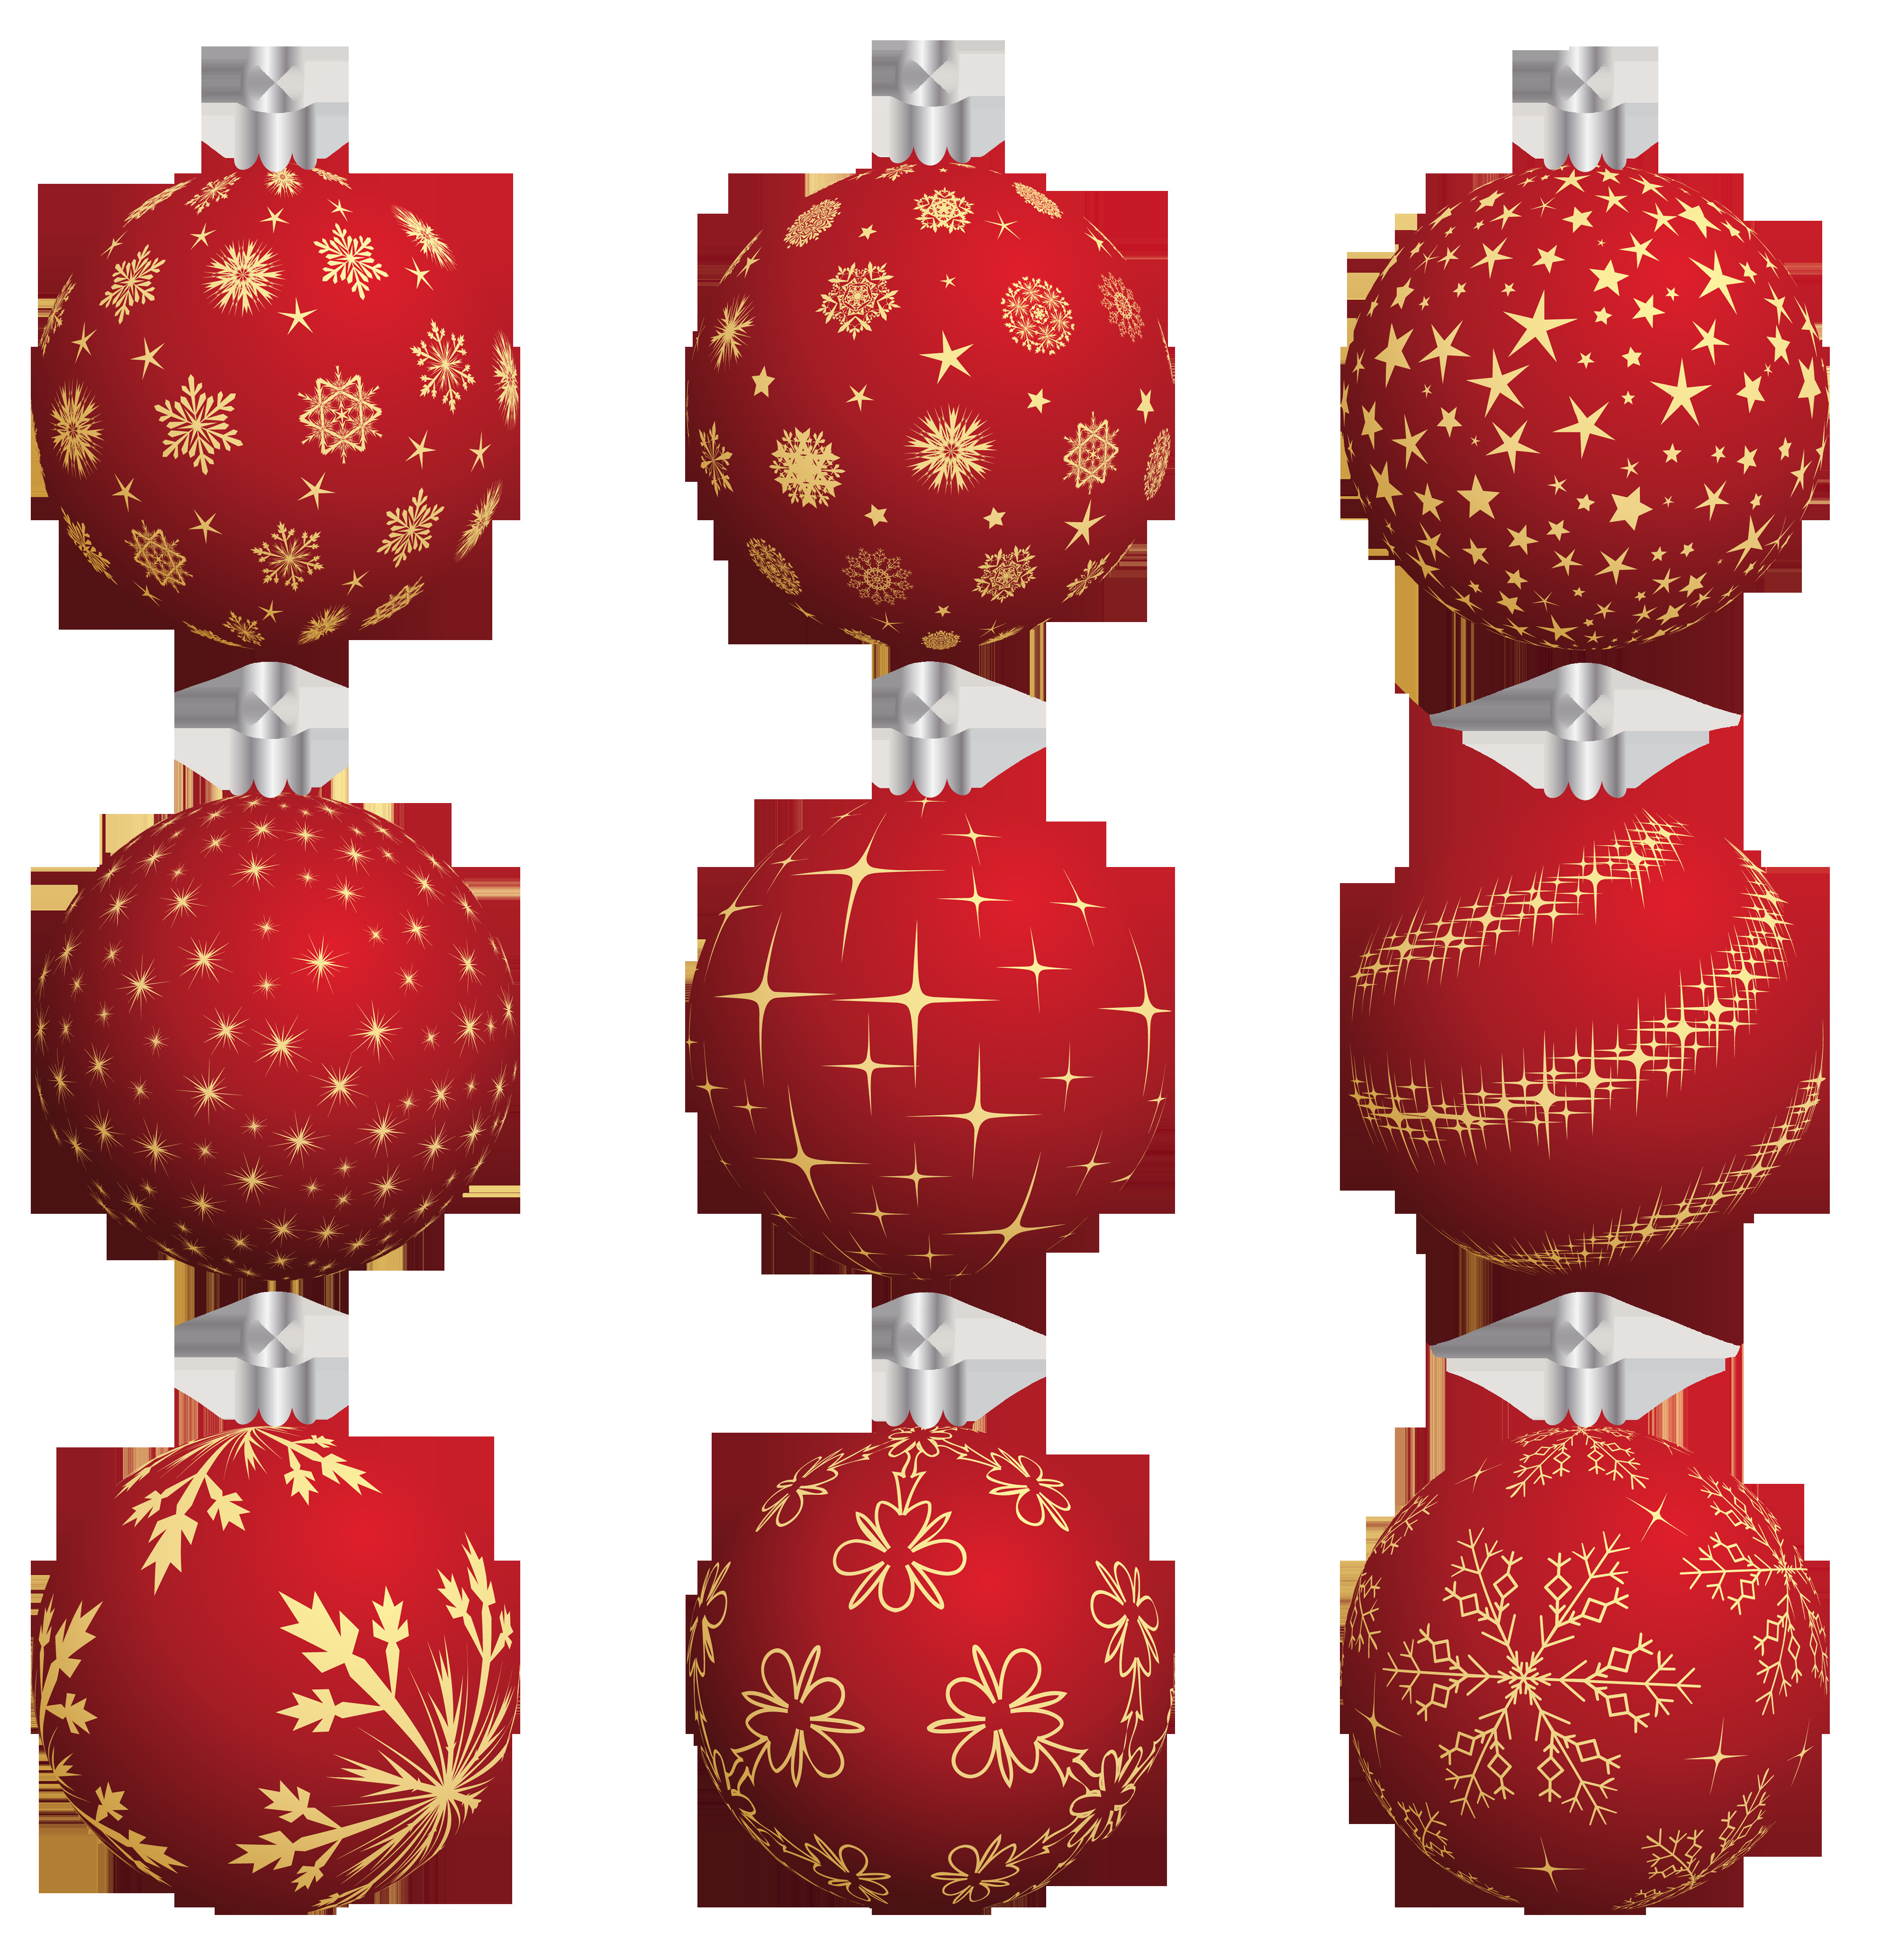 Red Christmas Balls Awesome Transparent Red Christmas Balls Collection Png Of Luxury 40 Pictures Red Christmas Balls